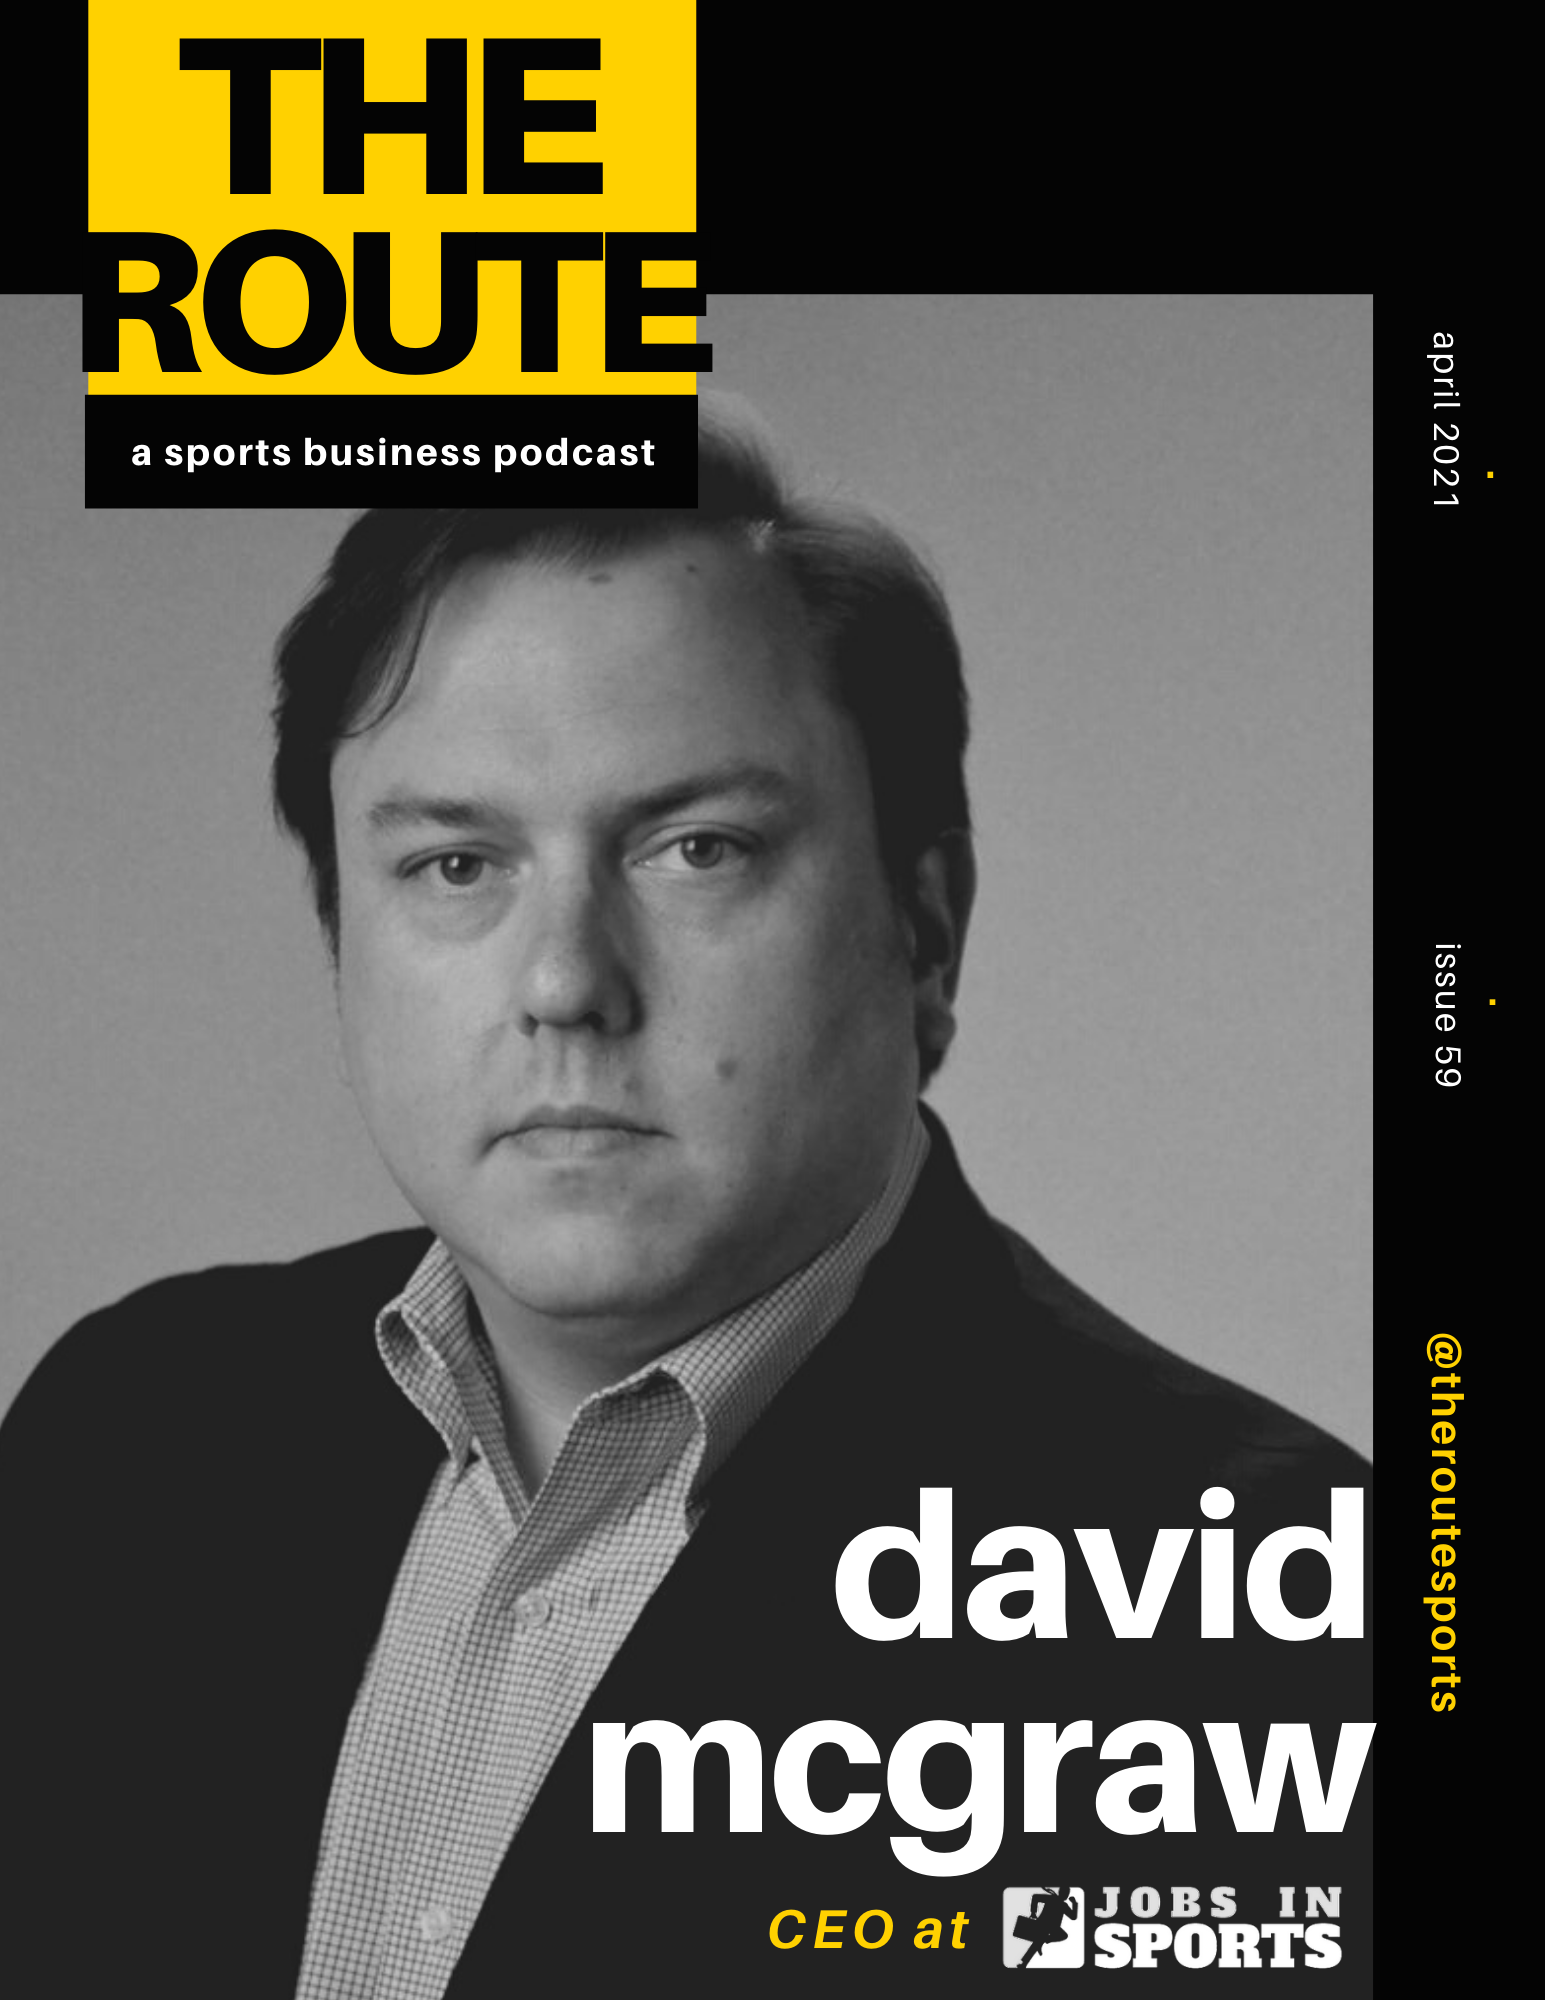 JobsInSports.com CEO David McGraw Featured On The Route Podcast